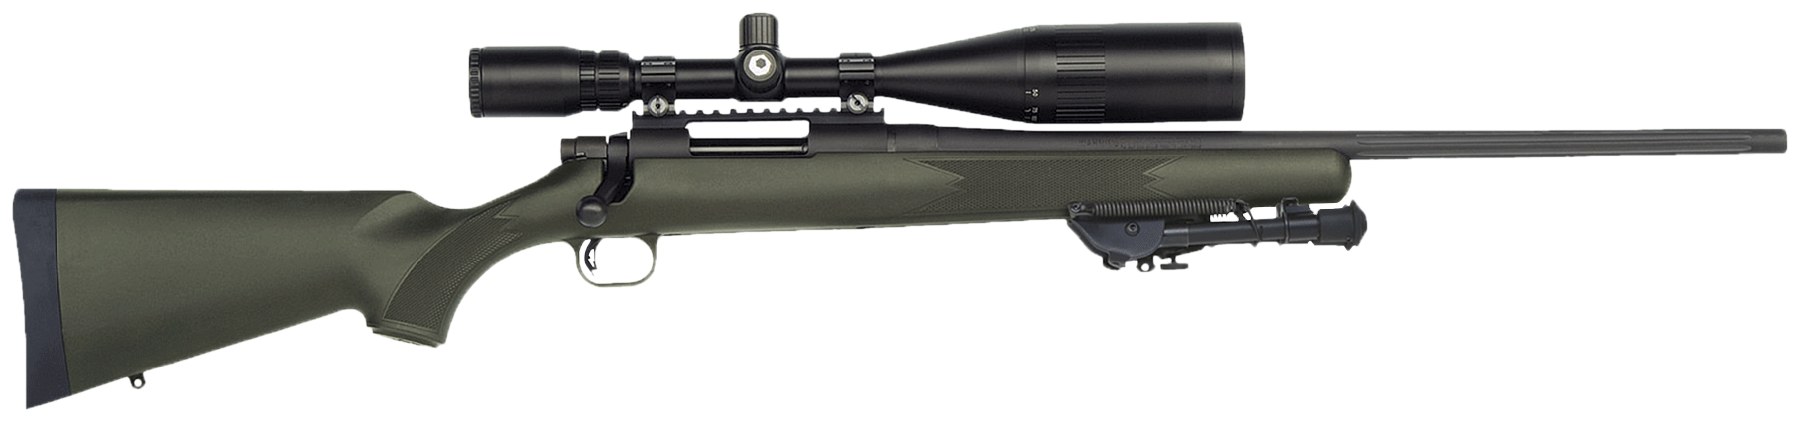 Mossberg 27203 ATR Night Train w/4-16x50mm Scope SA Bolt 308 Win 22